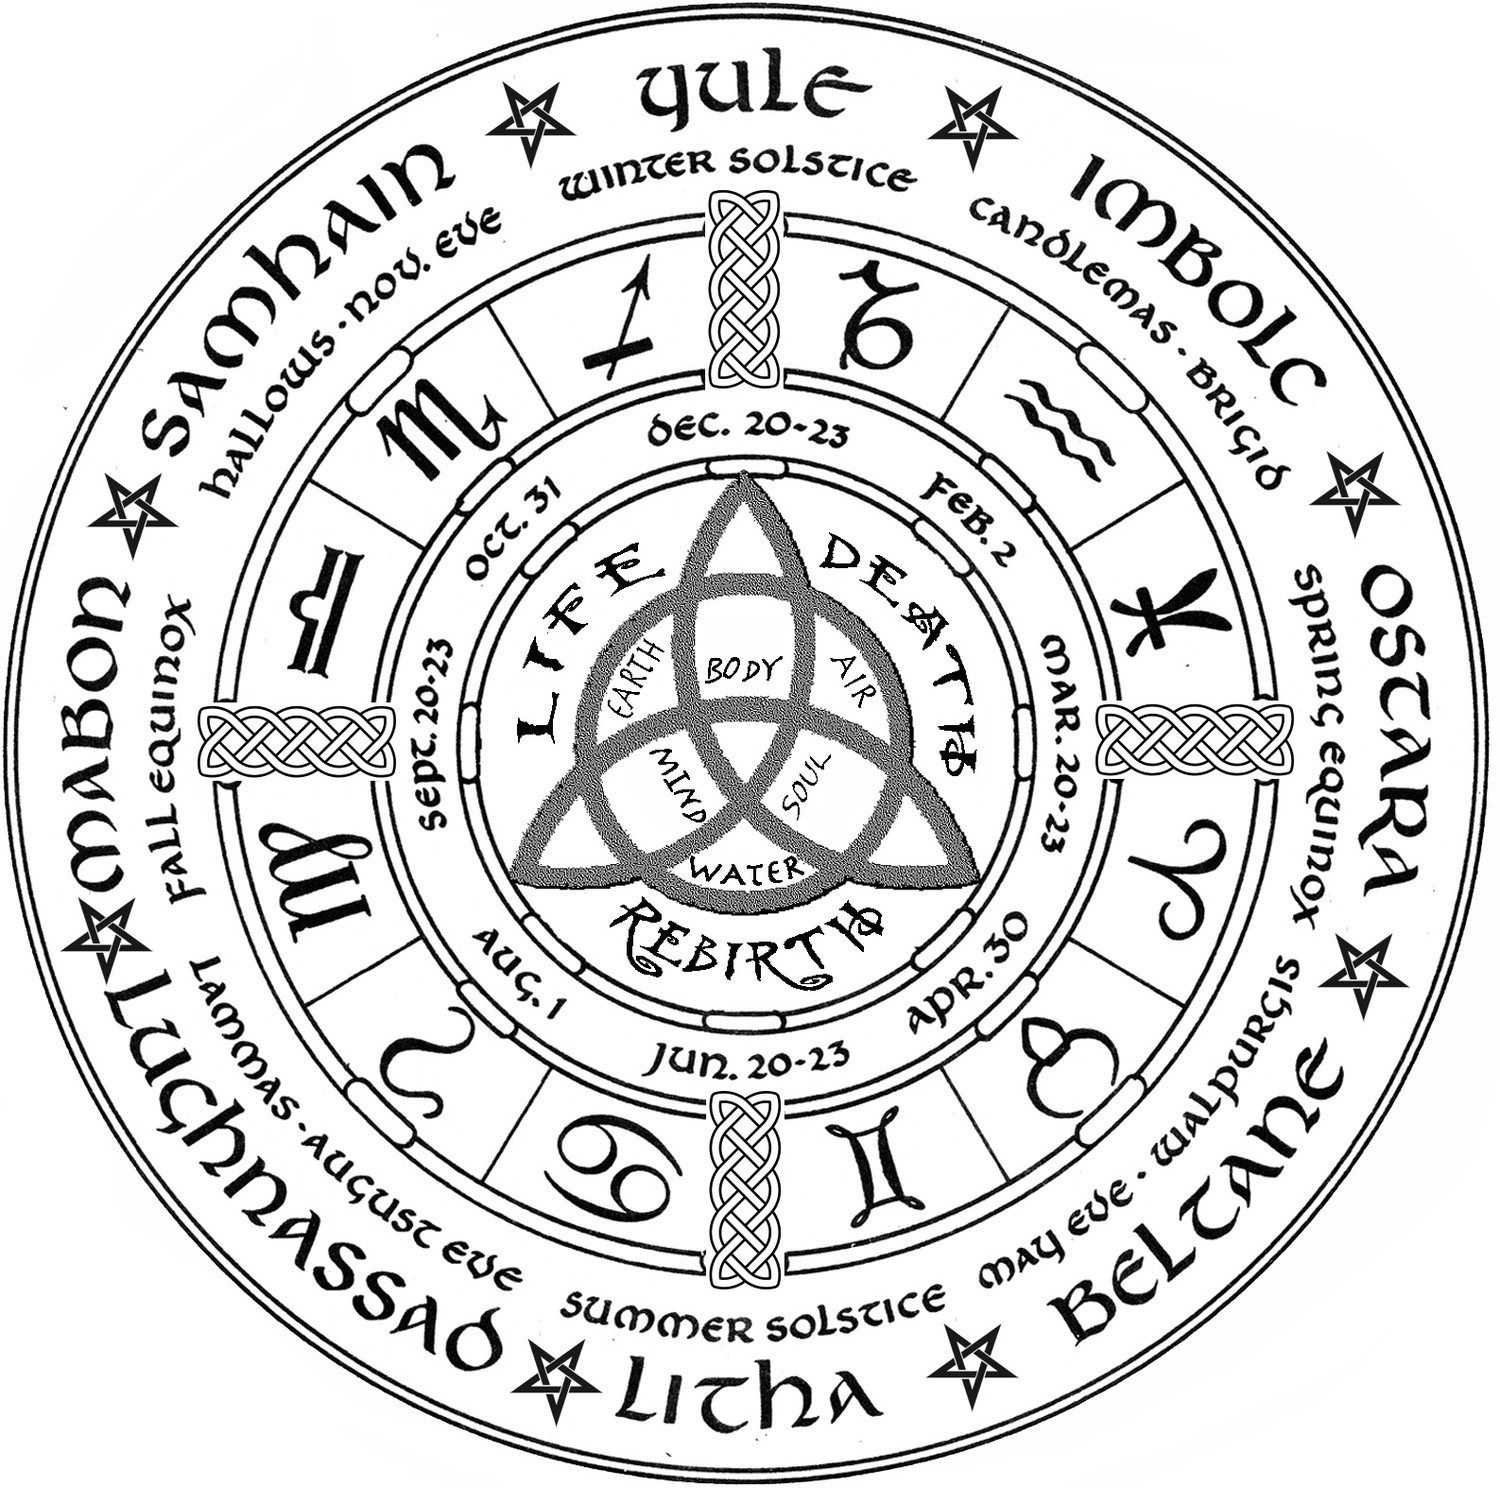 image gallery of ancient celtic protection symbols